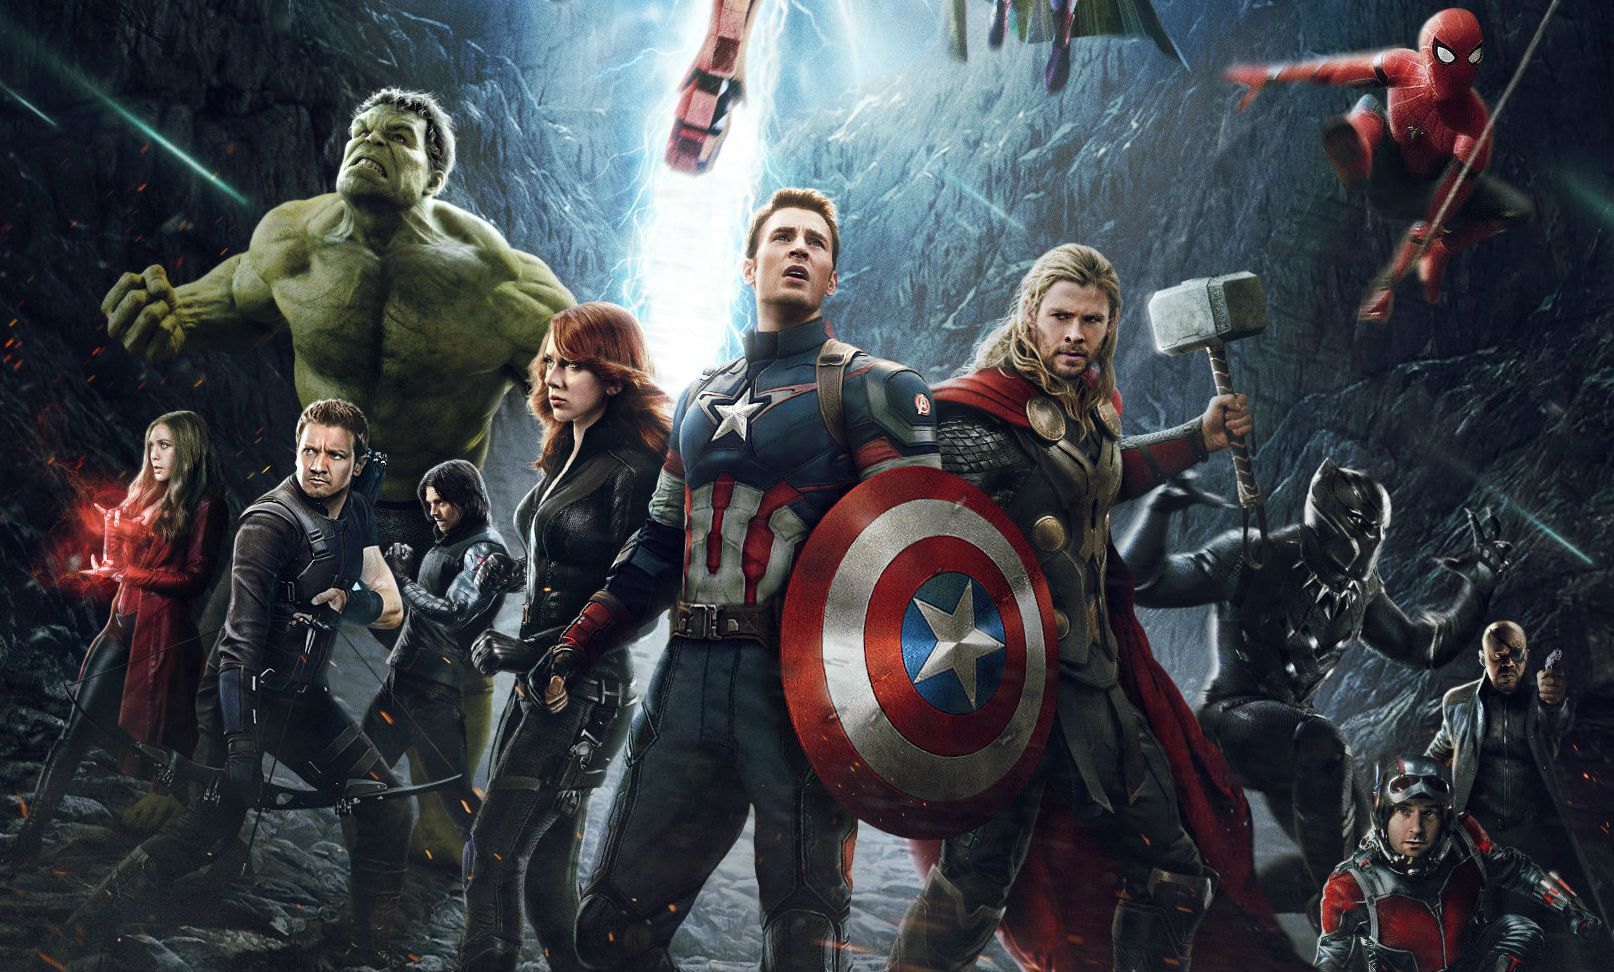 avengers endgame full movie with english subtitles free download